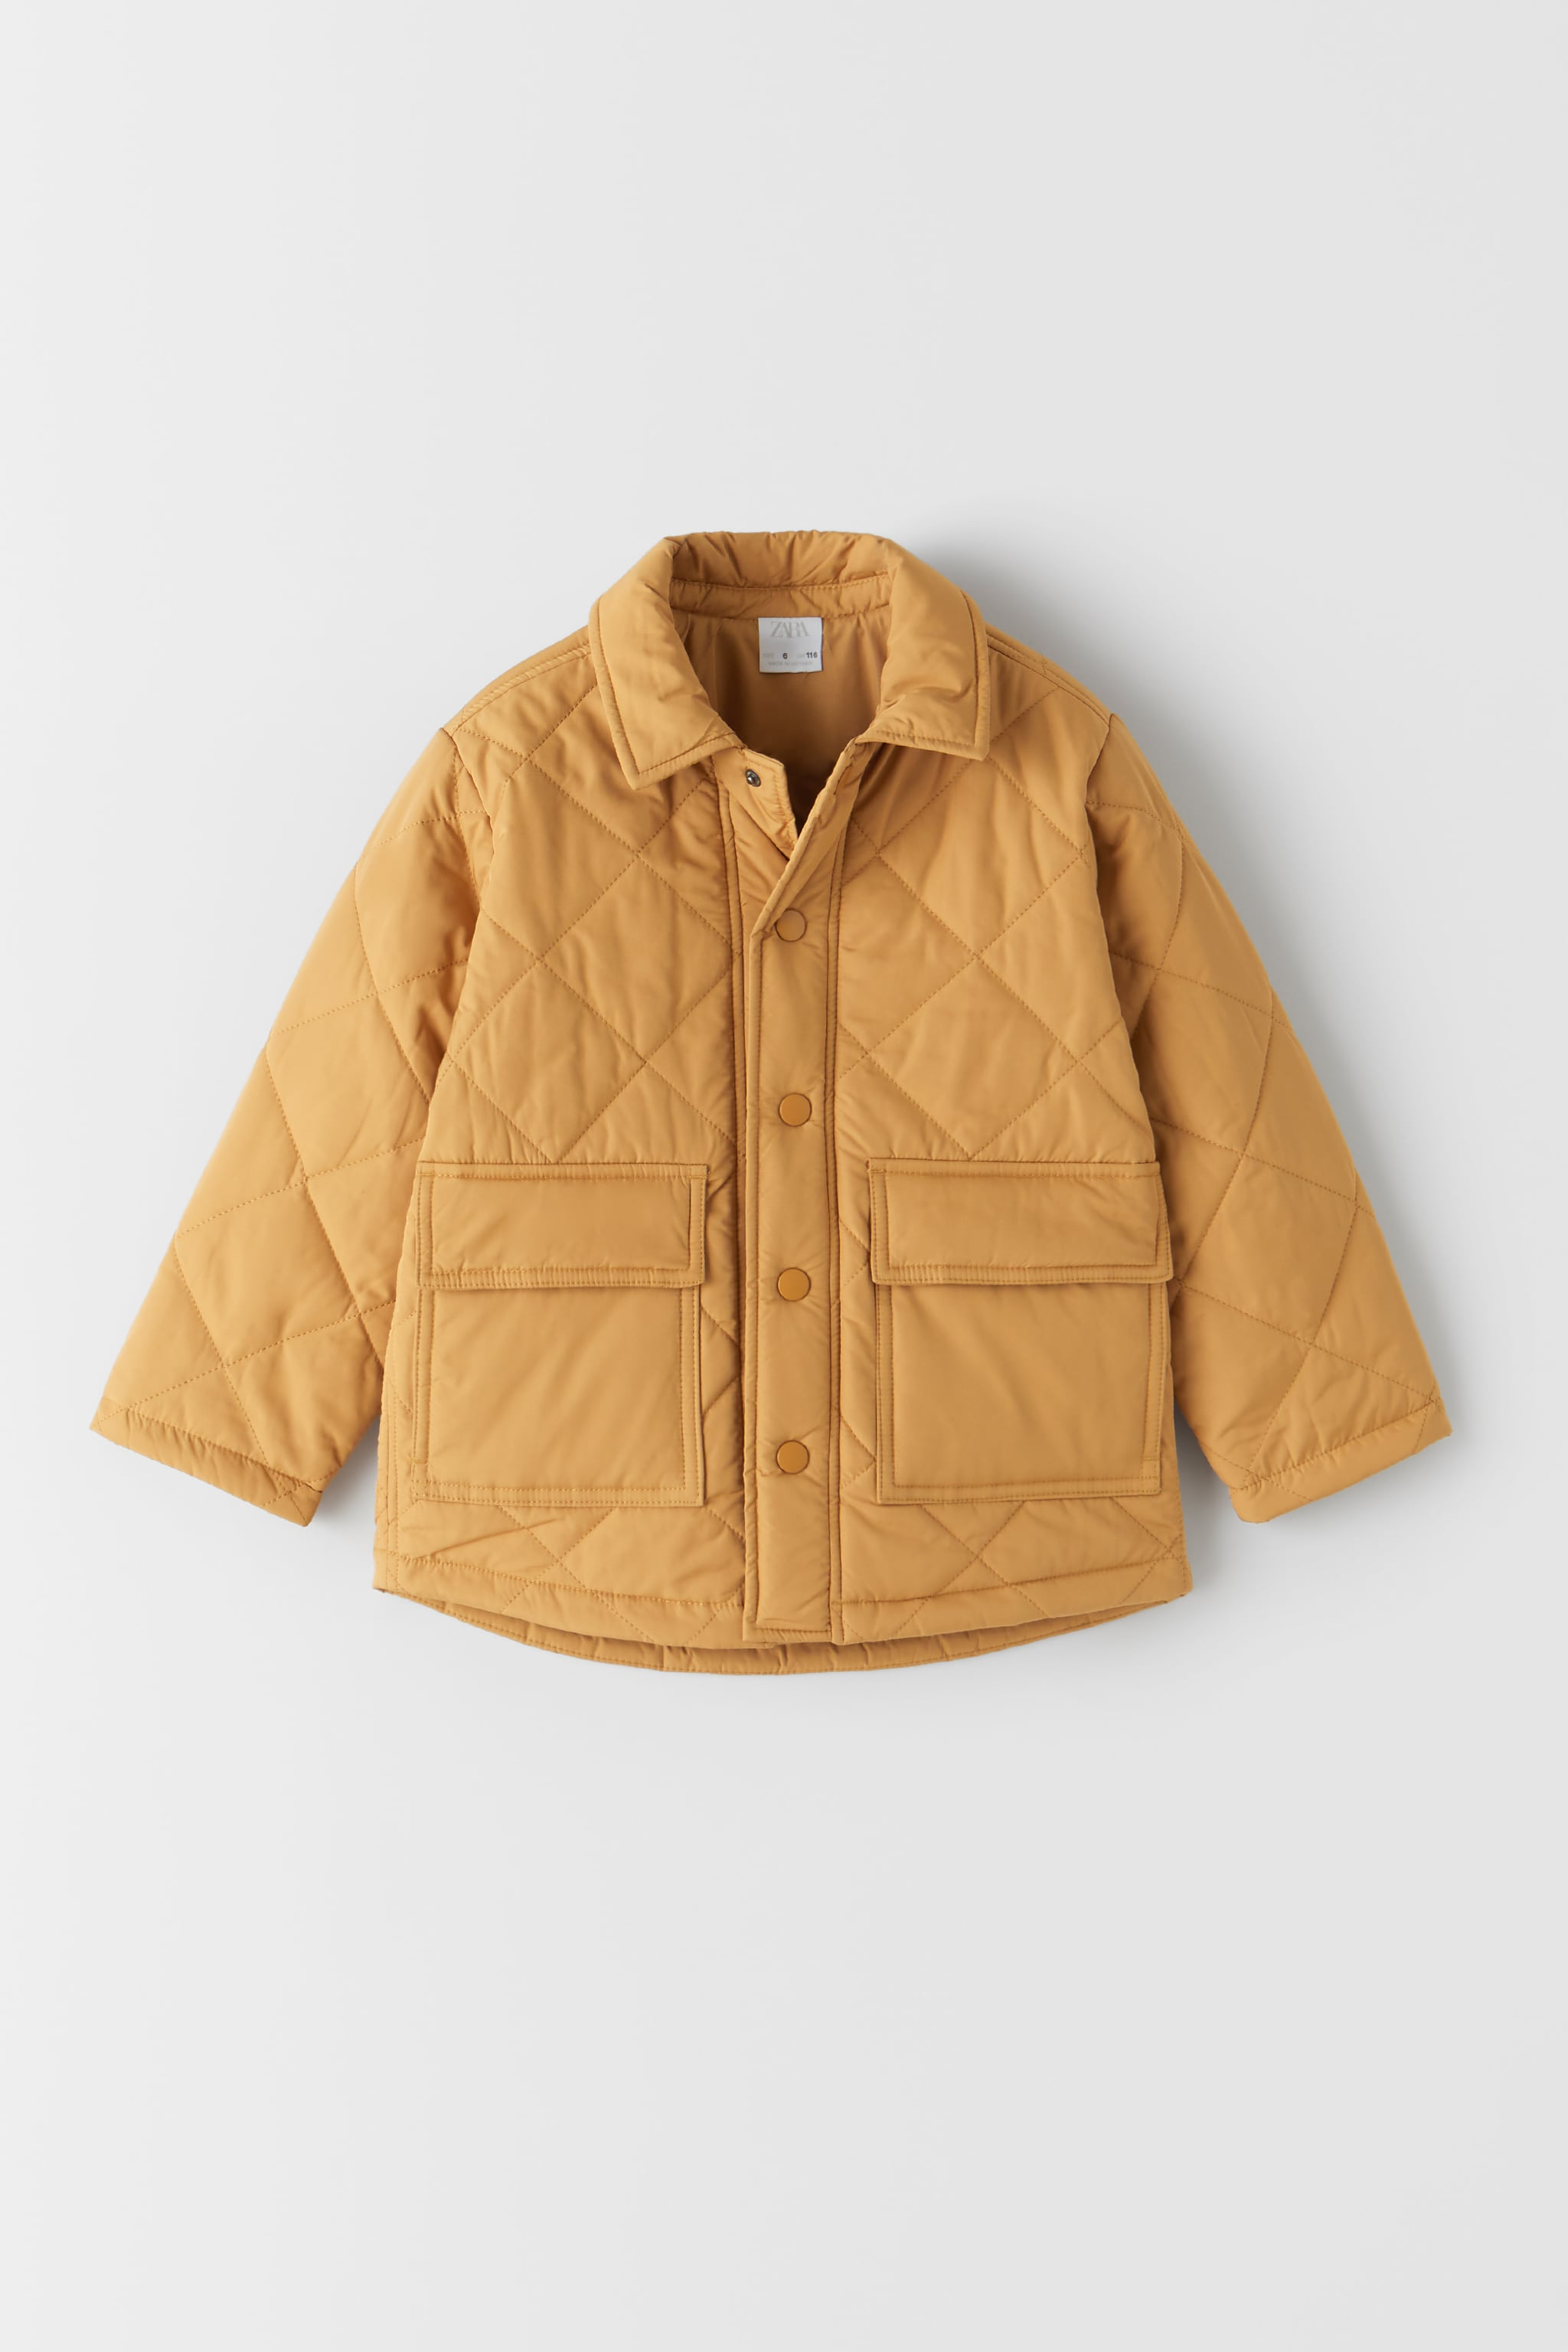 Zara POCKETS PUFFER JACKET